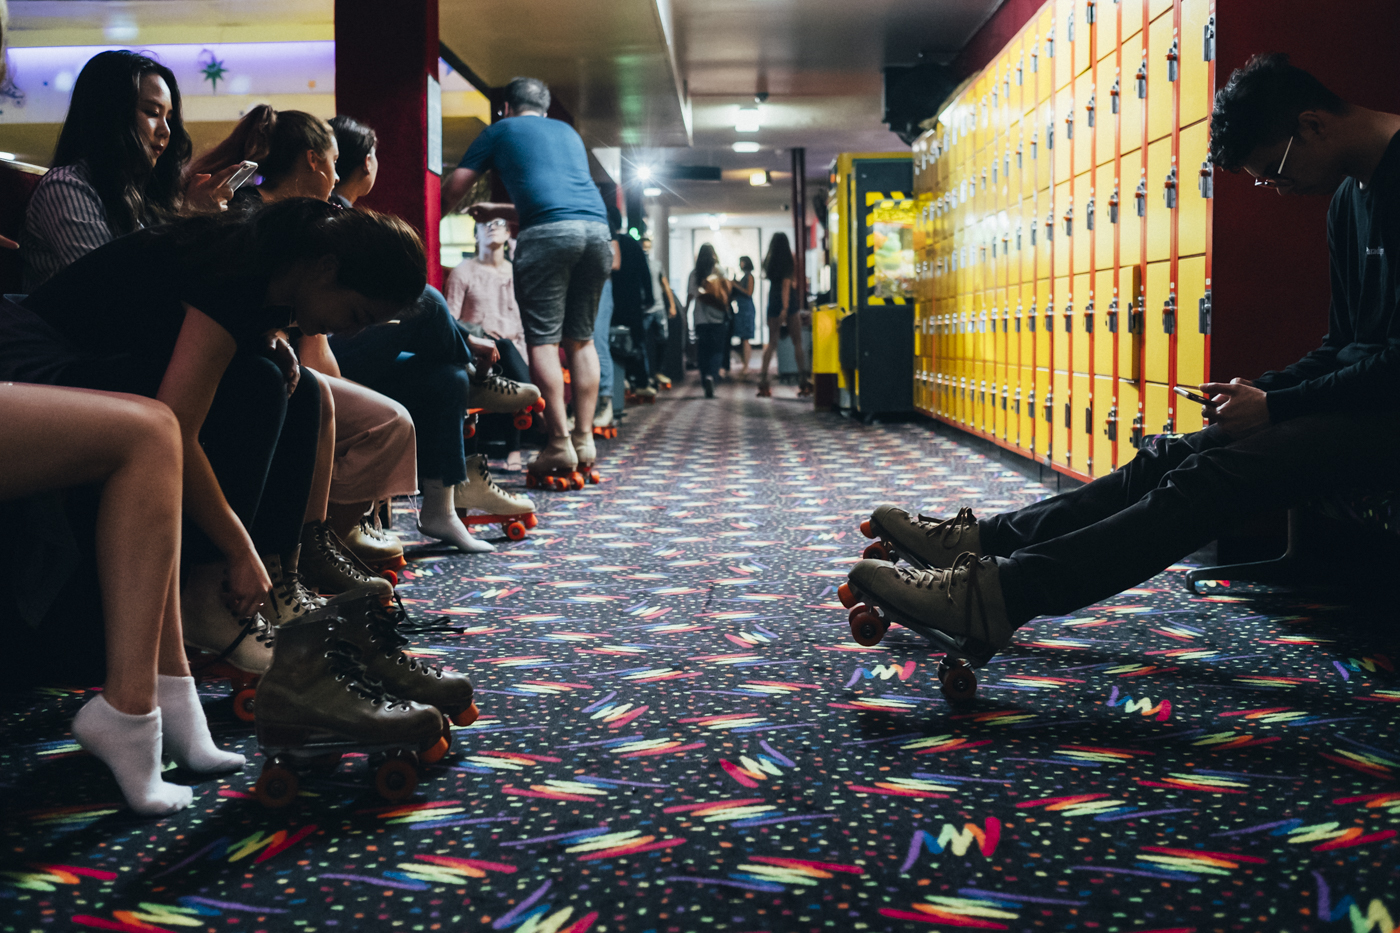 All around the rink, alleys with carpets as in the 70s. Young people rest there, beginners recover from their emotions before  nding the courage to return to the rink, and most of them  irt and have fun